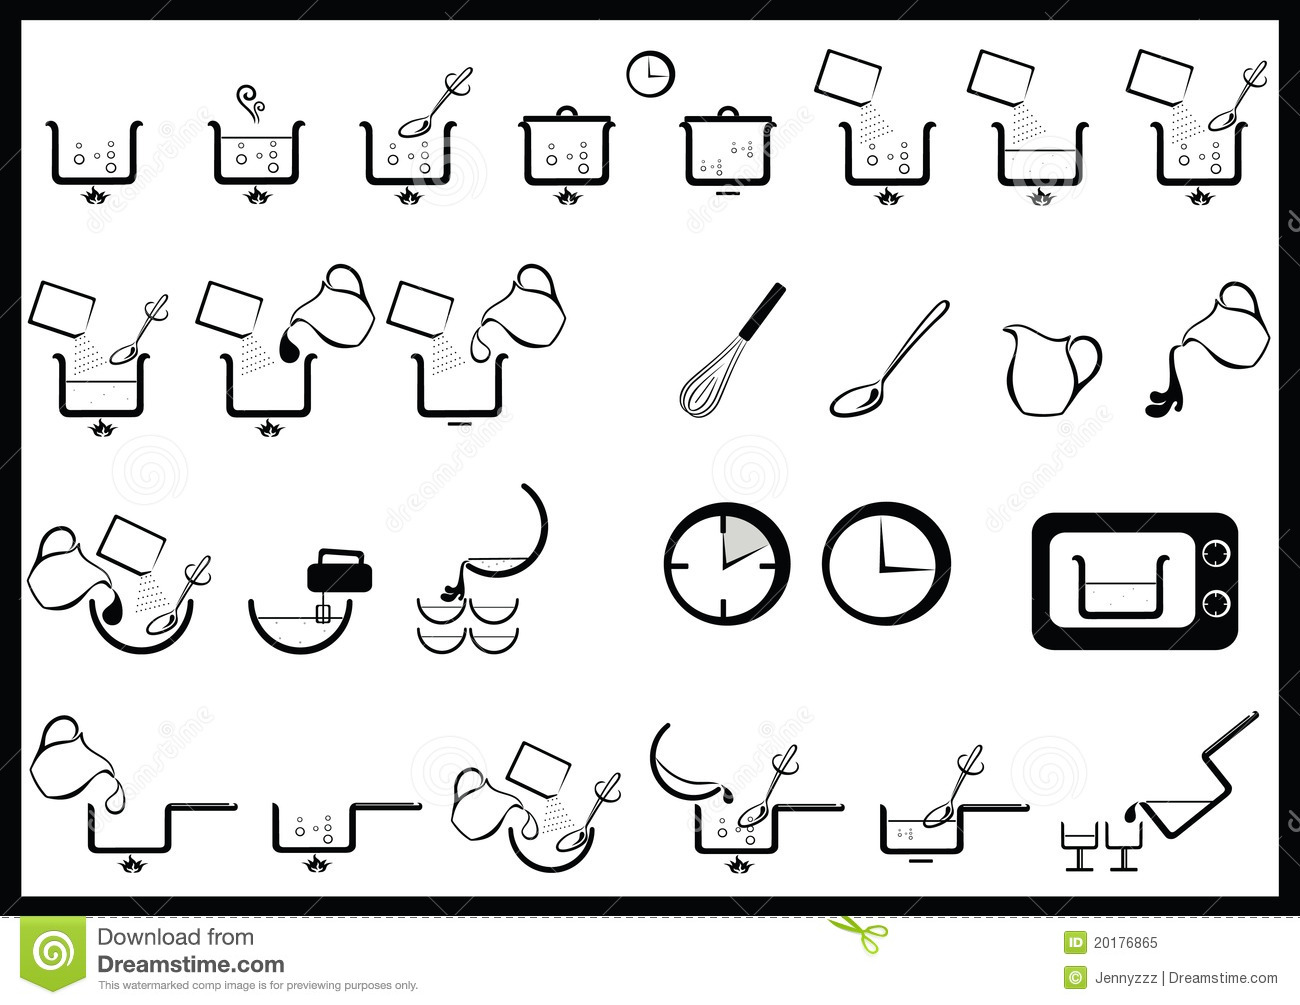 Cooking instructions stock vector. Illustration of